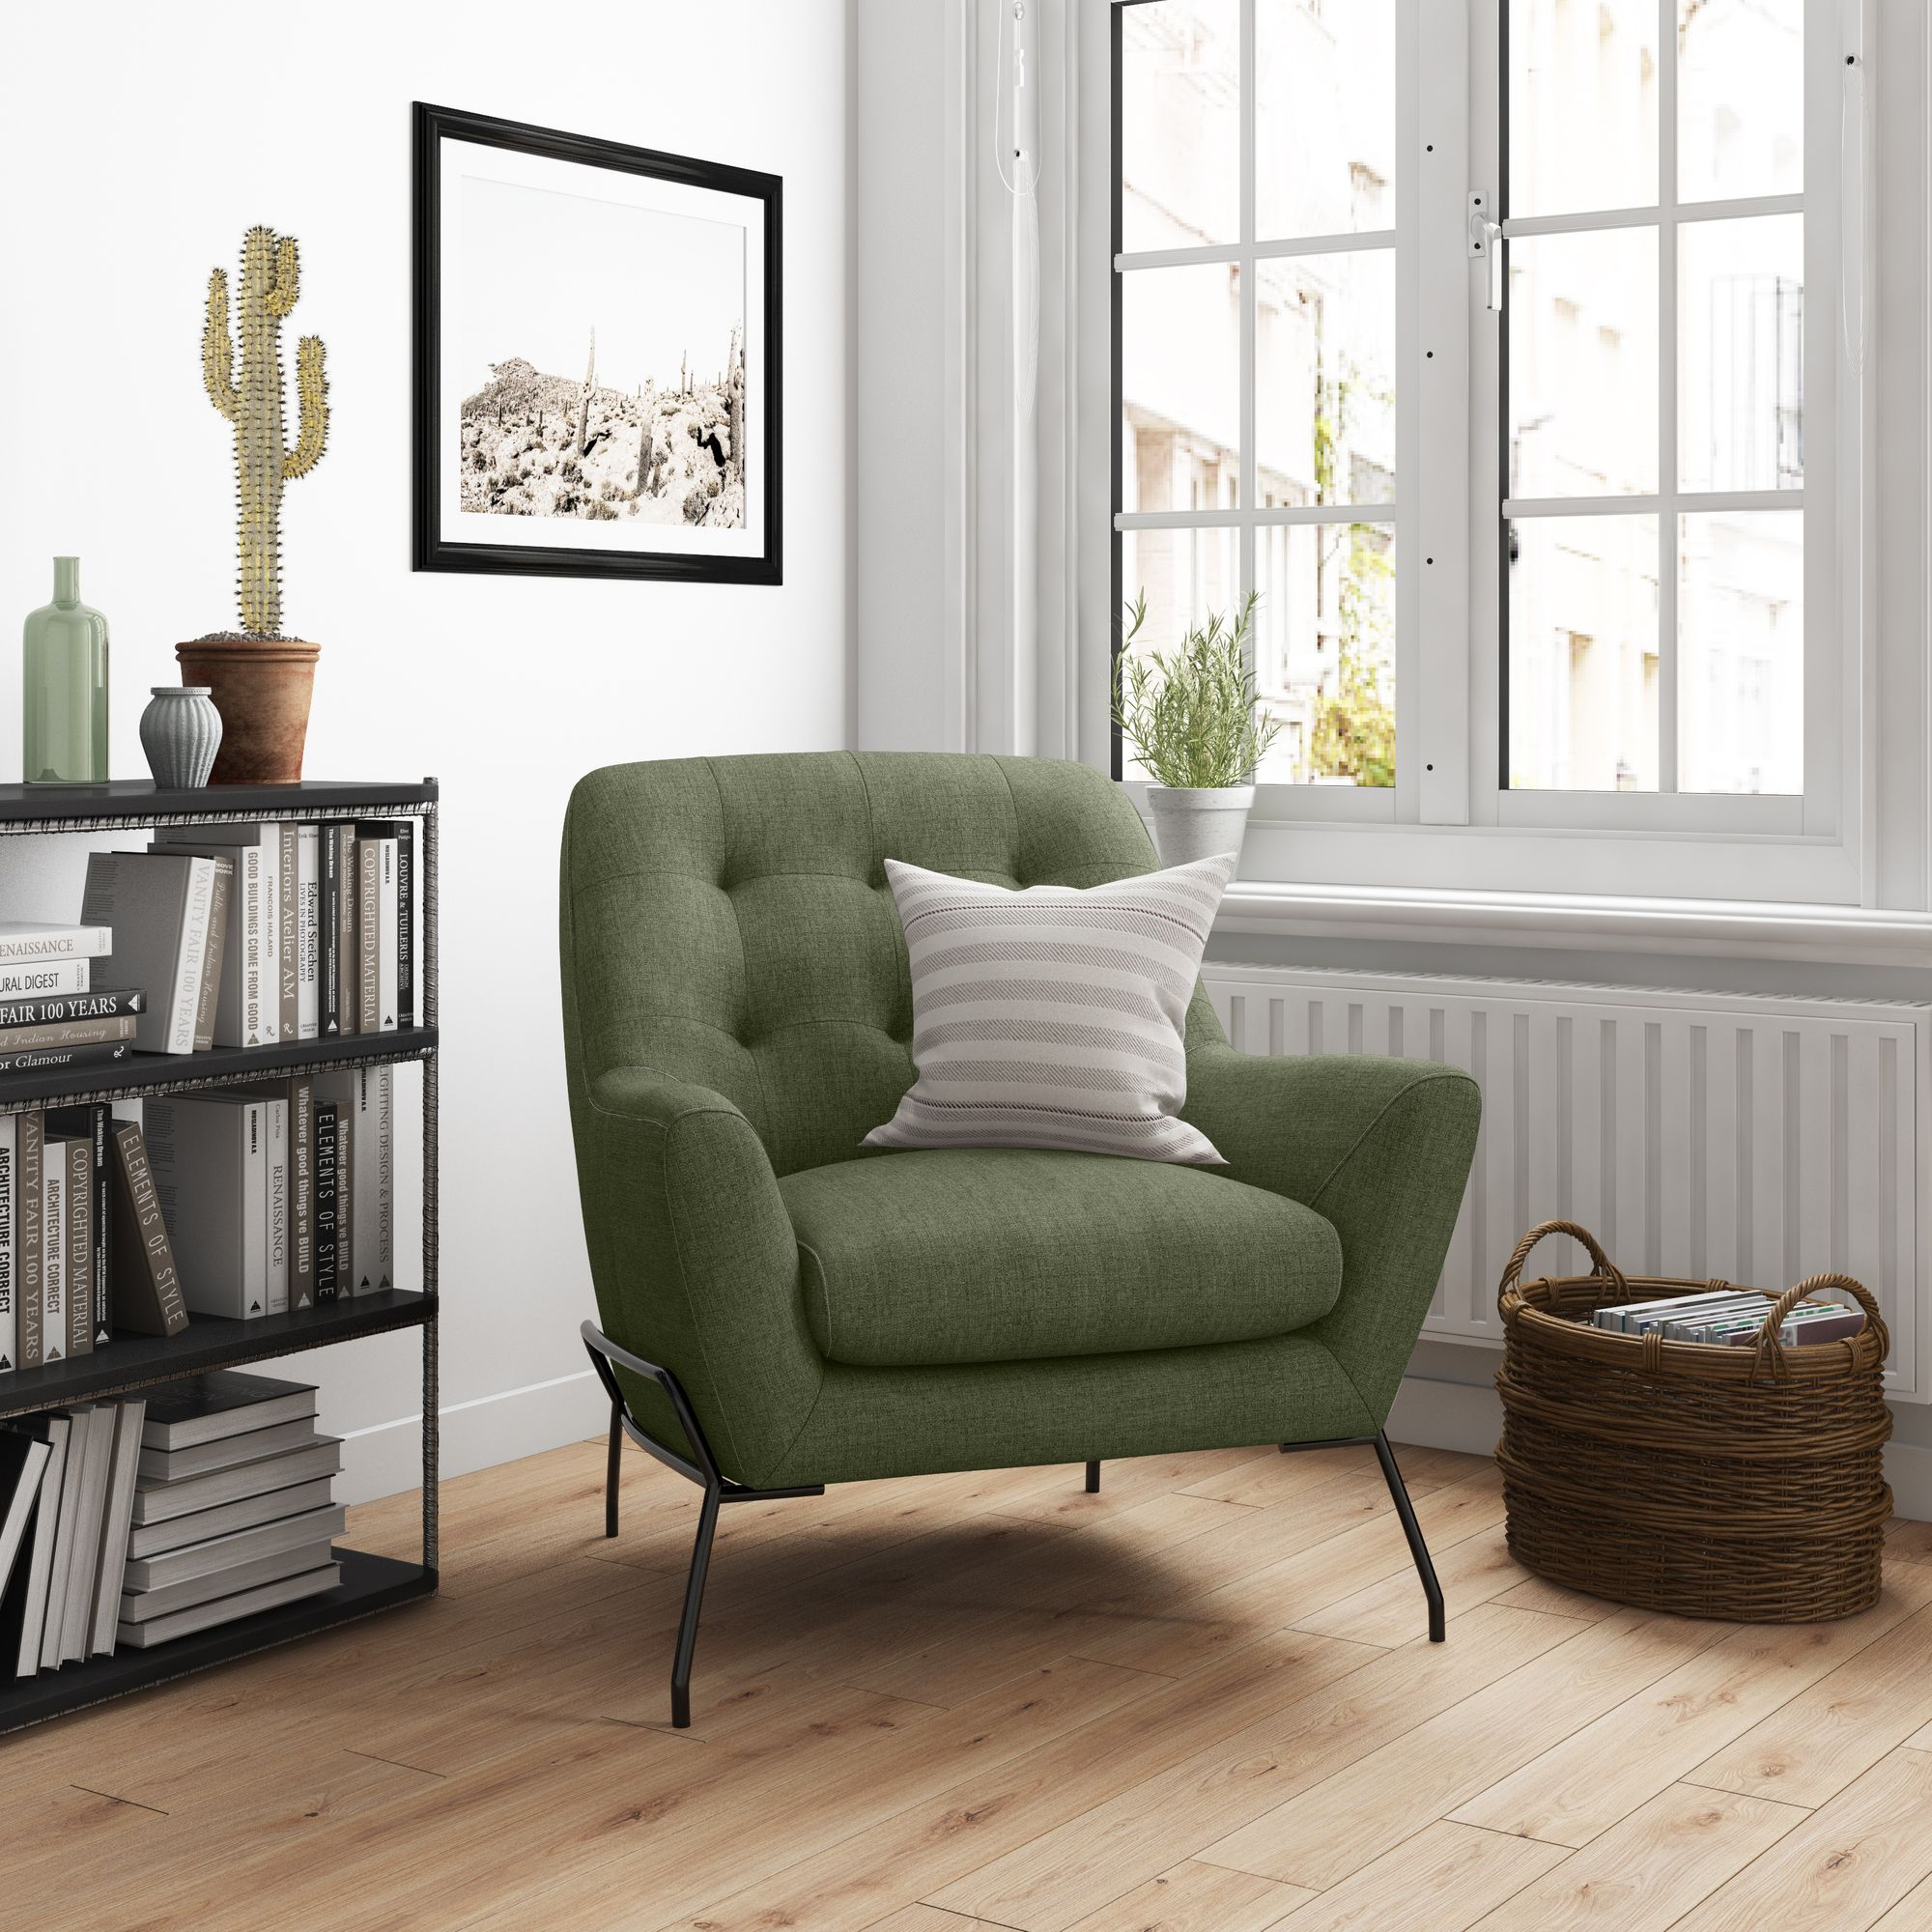 Pin On Home #statement #chairs #for #living #room